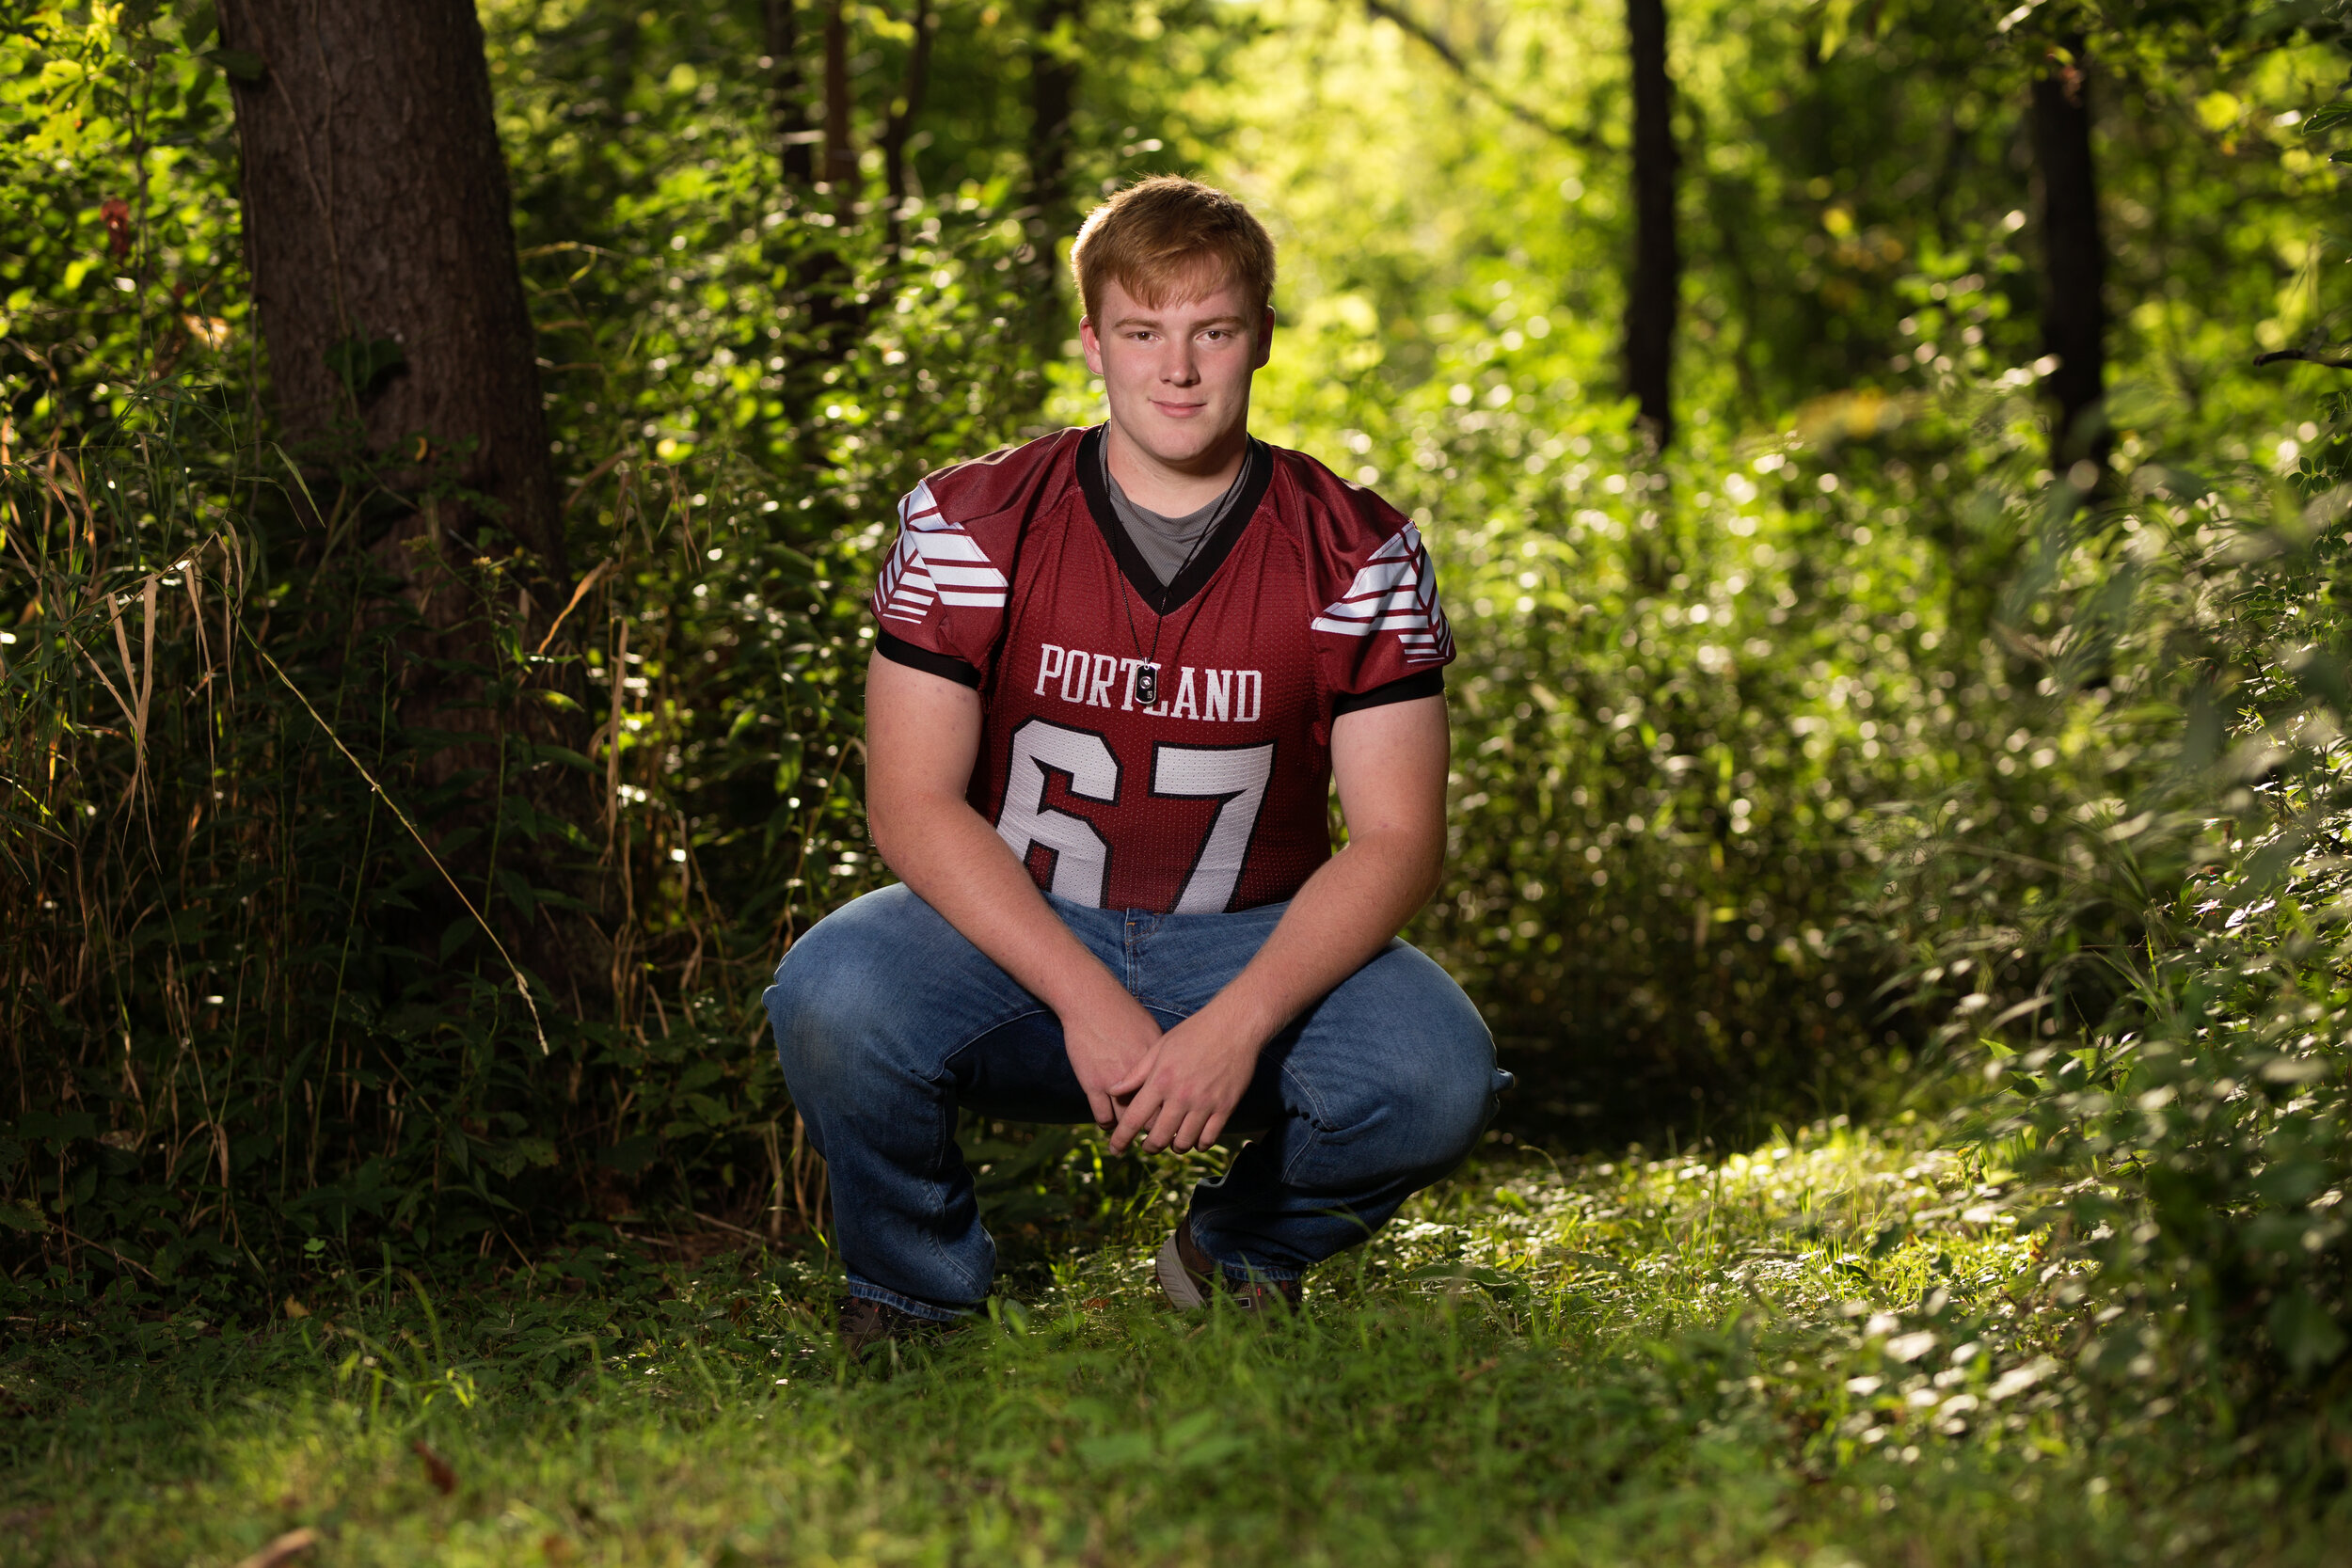 senior picture of boy crouching in football jersey